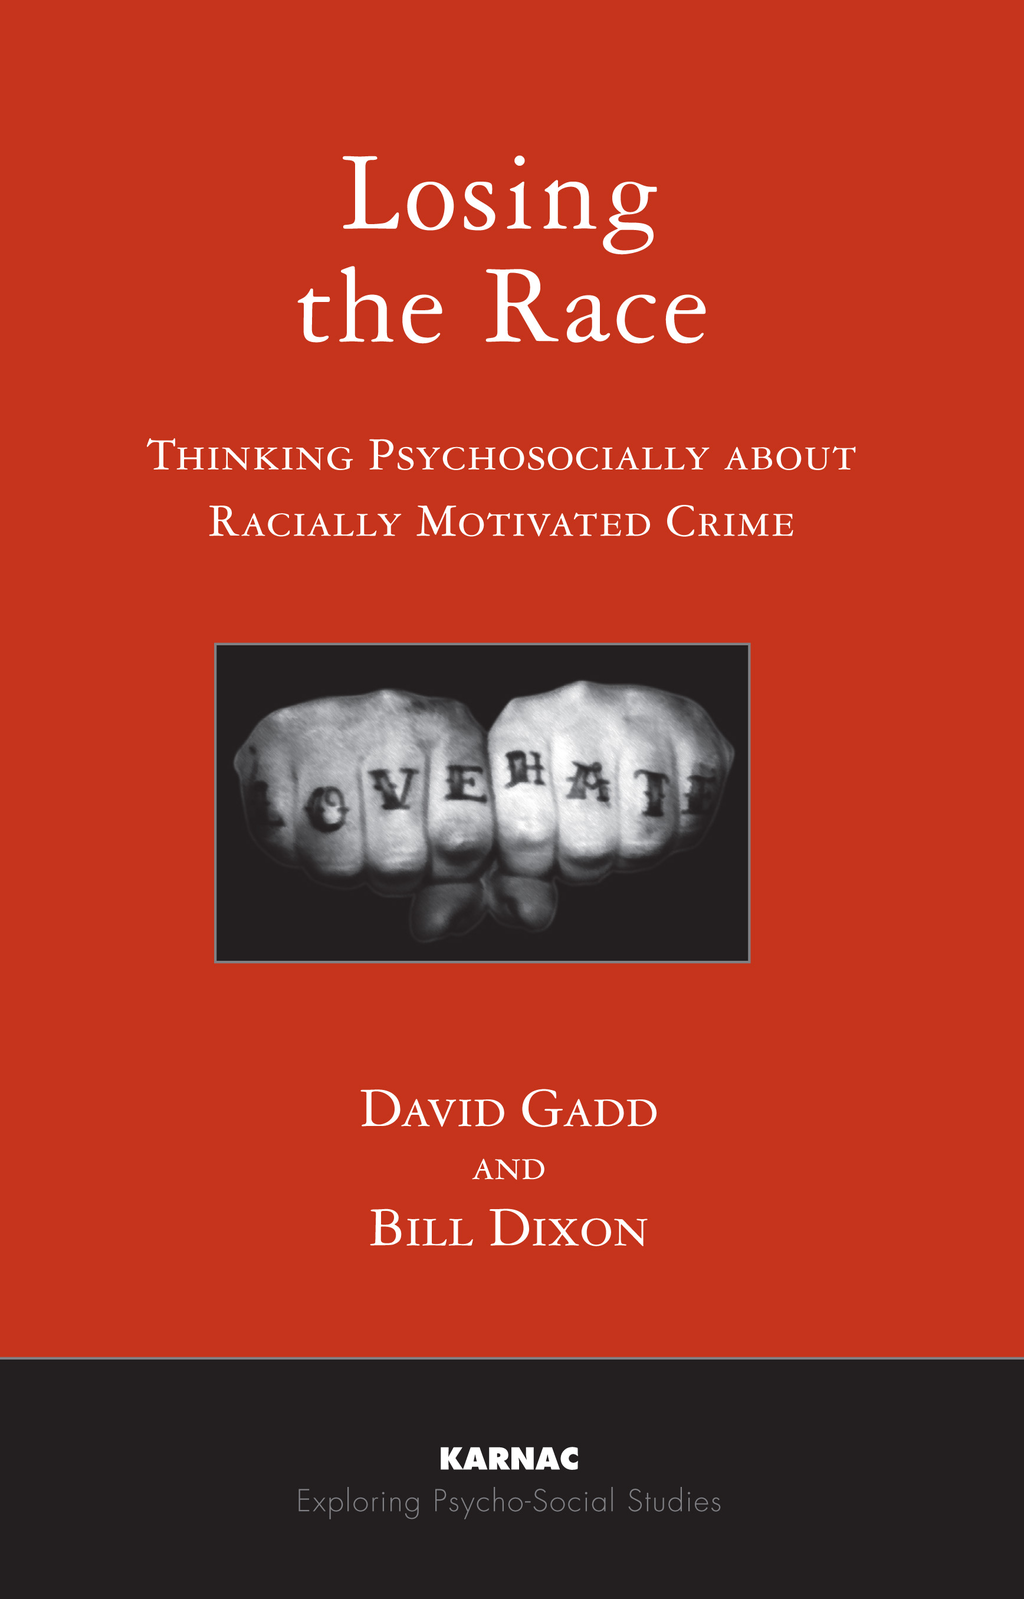 Losing the Race: Thinking Psychosocially about Racially Motivated Crime